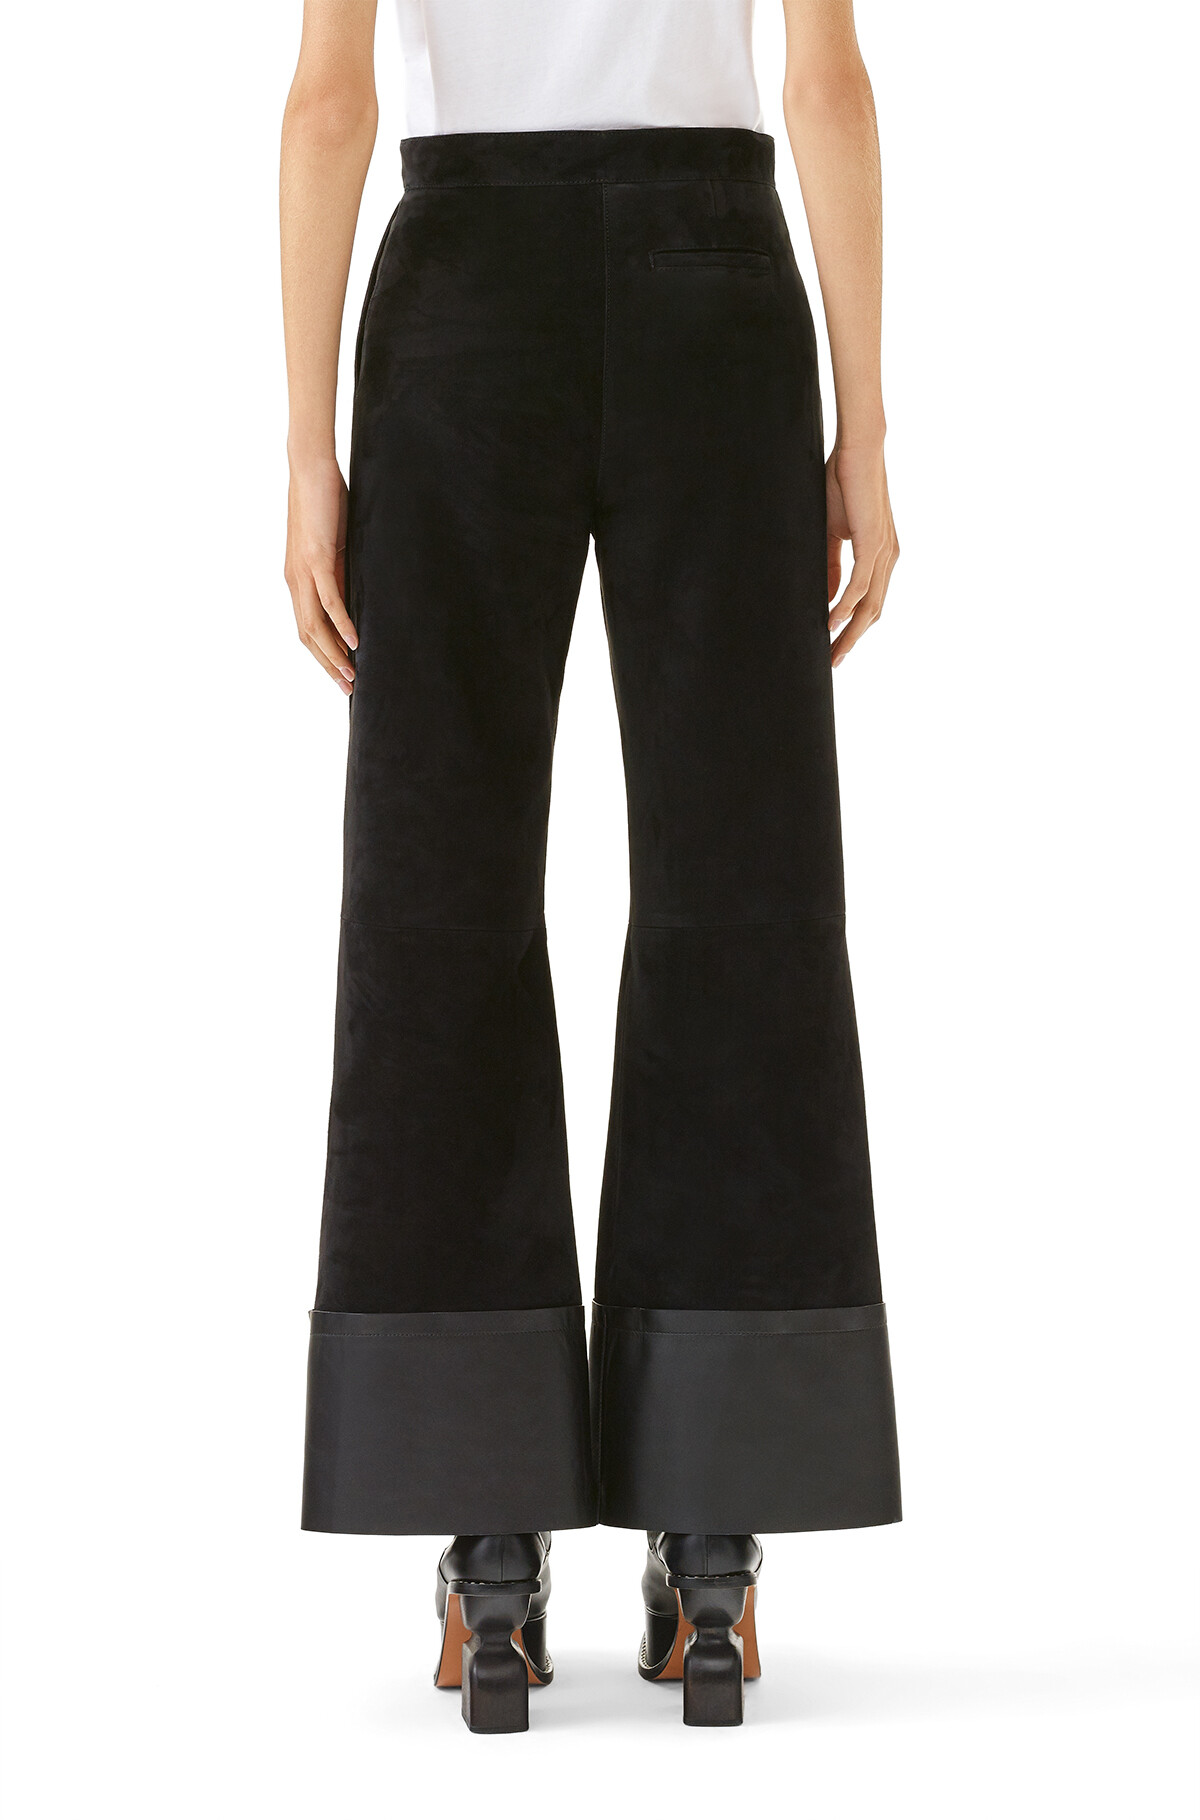 LOEWE Flare Trousers Black front